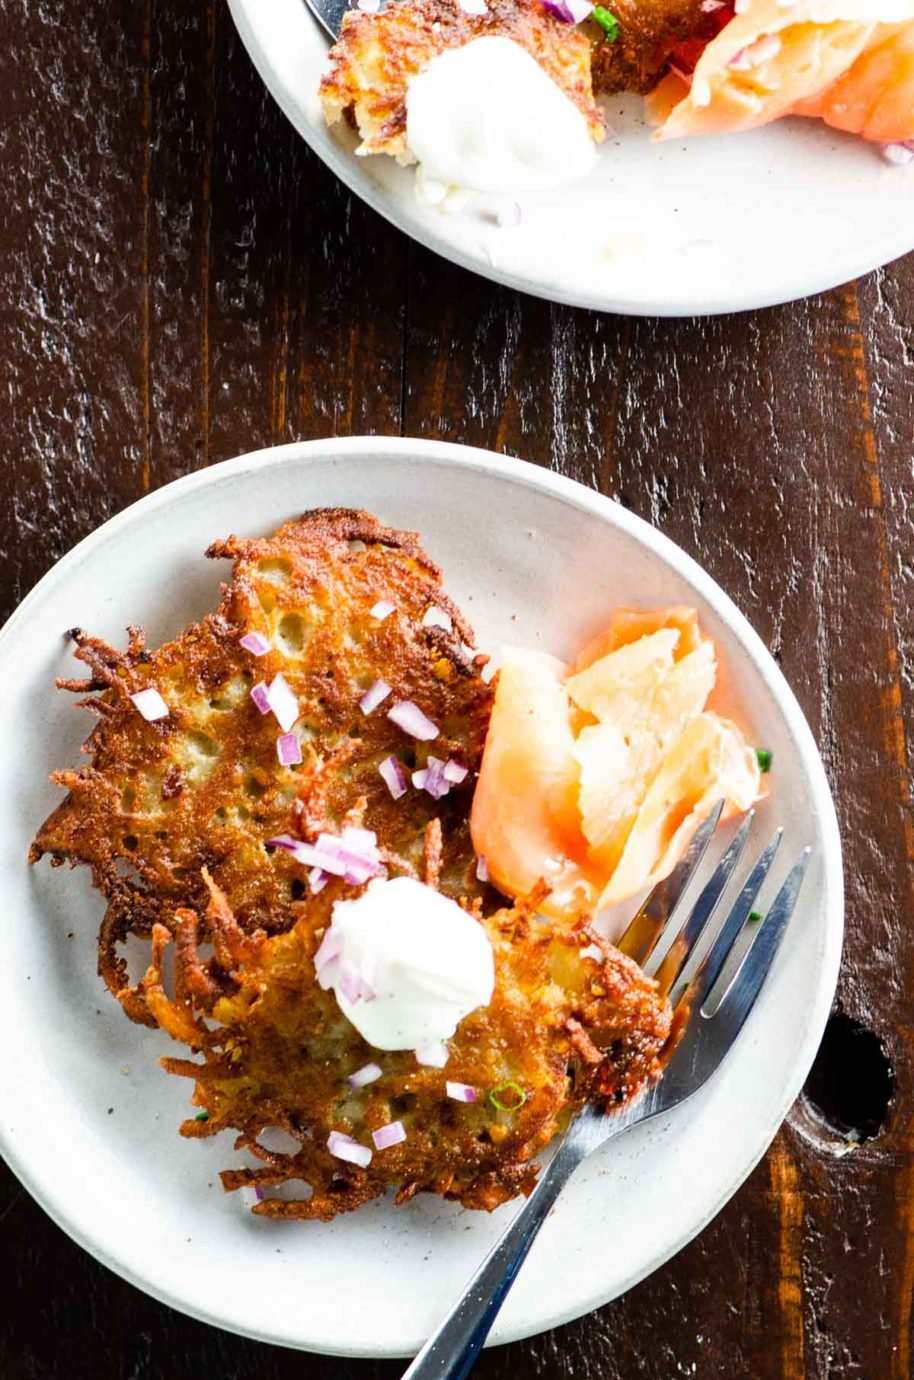 potato pancakes, smoked salmon, and sour cream on plates